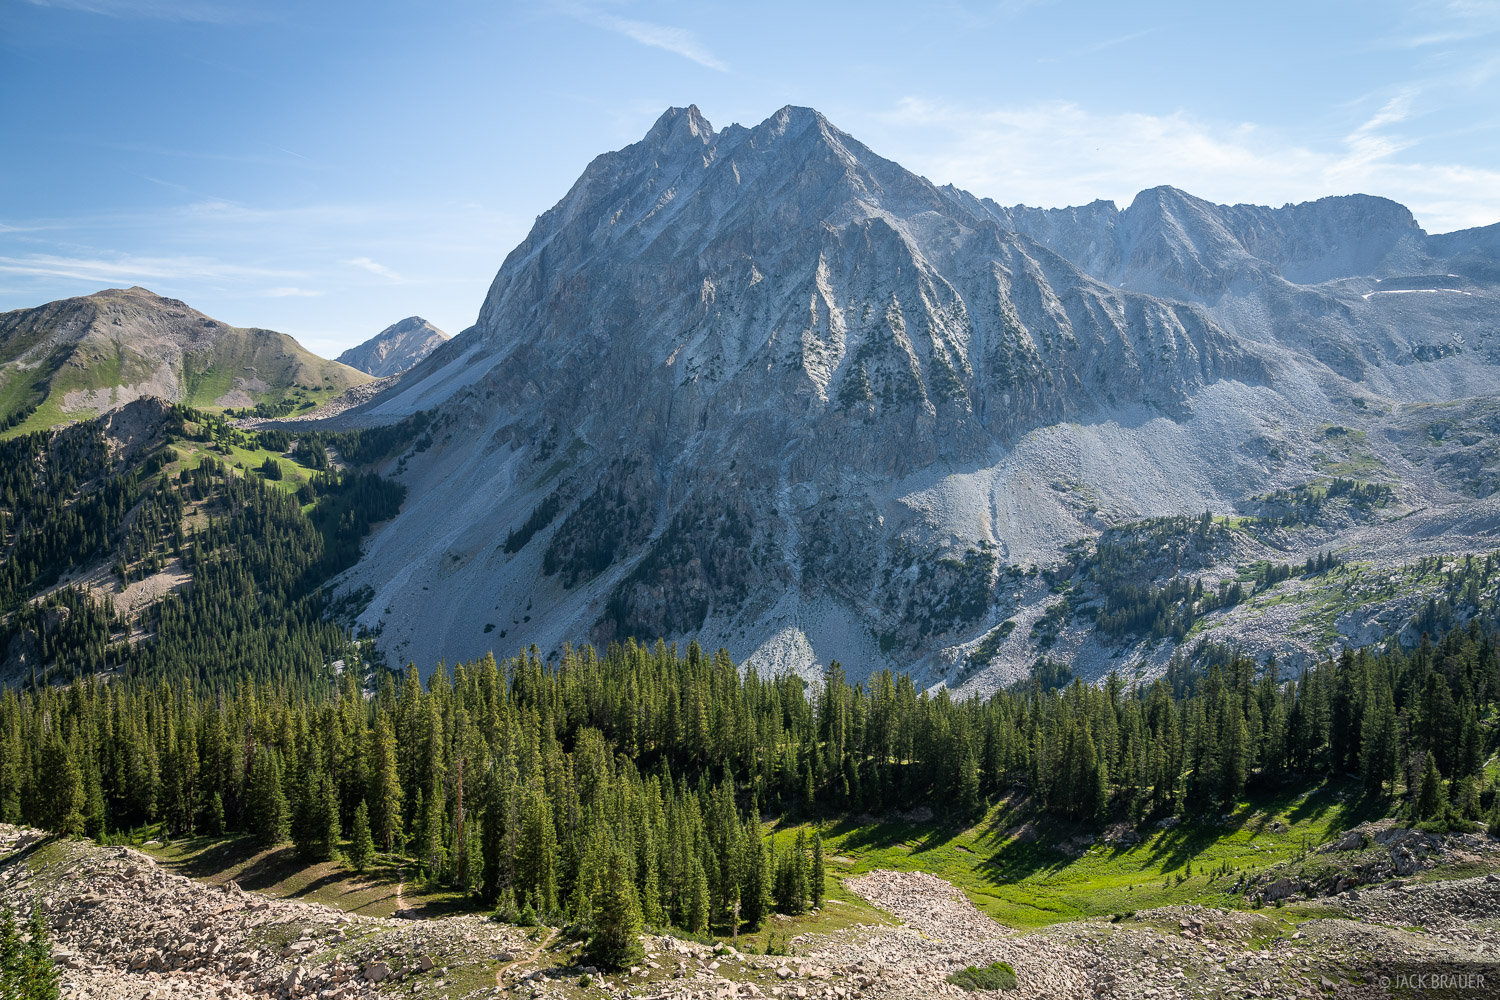 Capitol Peak (14,130 ft.) towers over its surroundings in the Maroon Bells-Snowmass Wilderness.